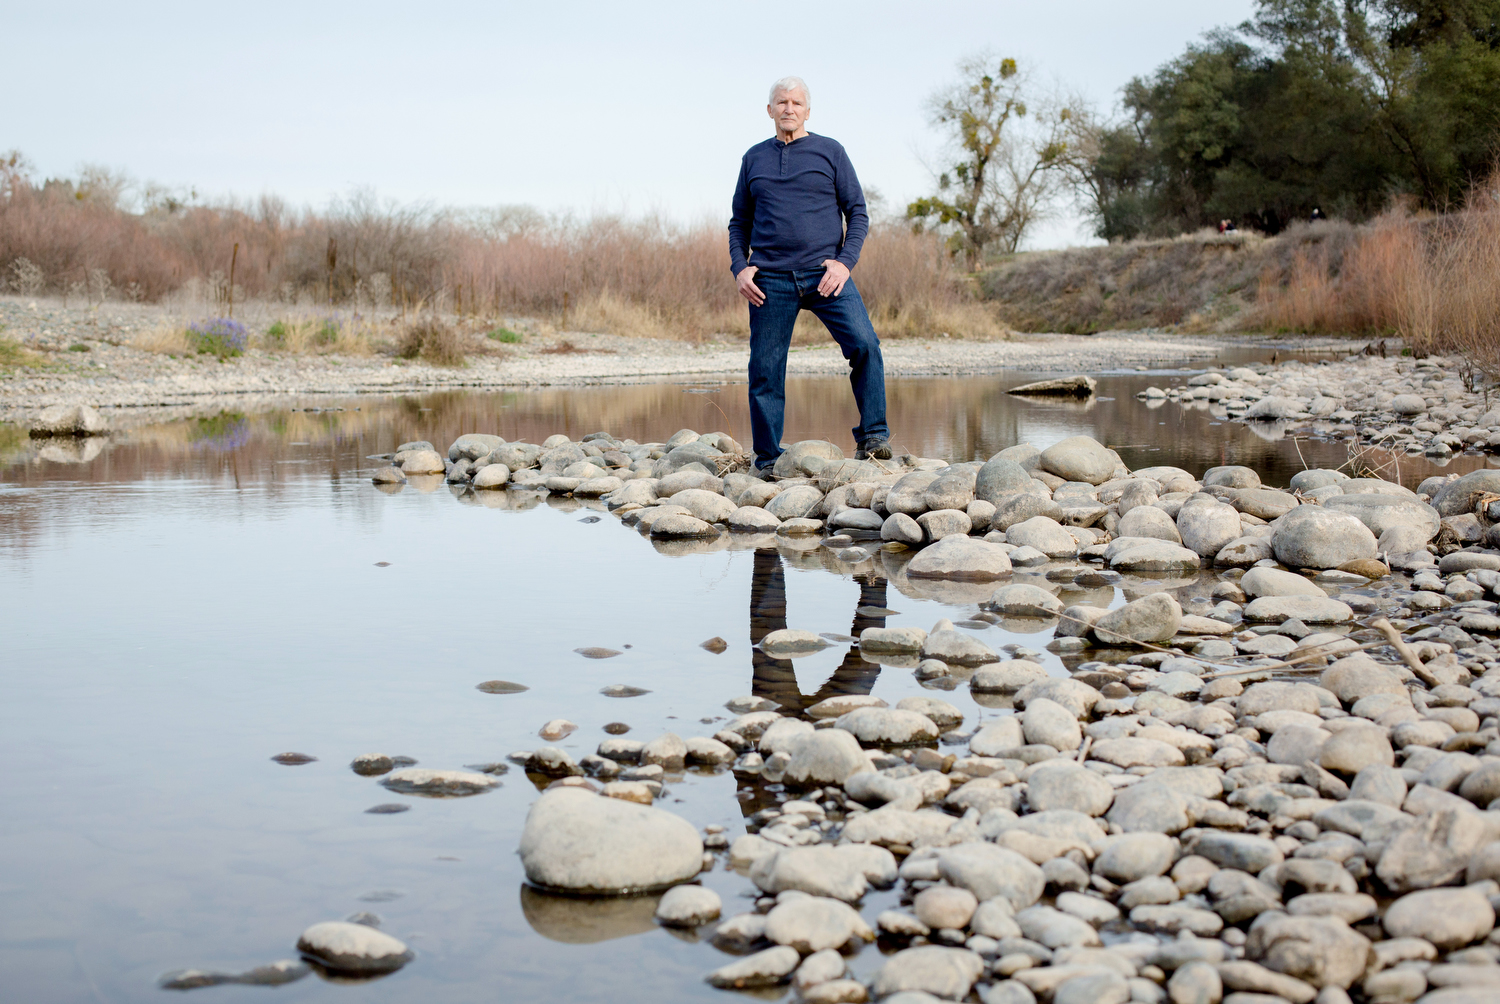 Jim Jones, a board member of the Save the American River Association.